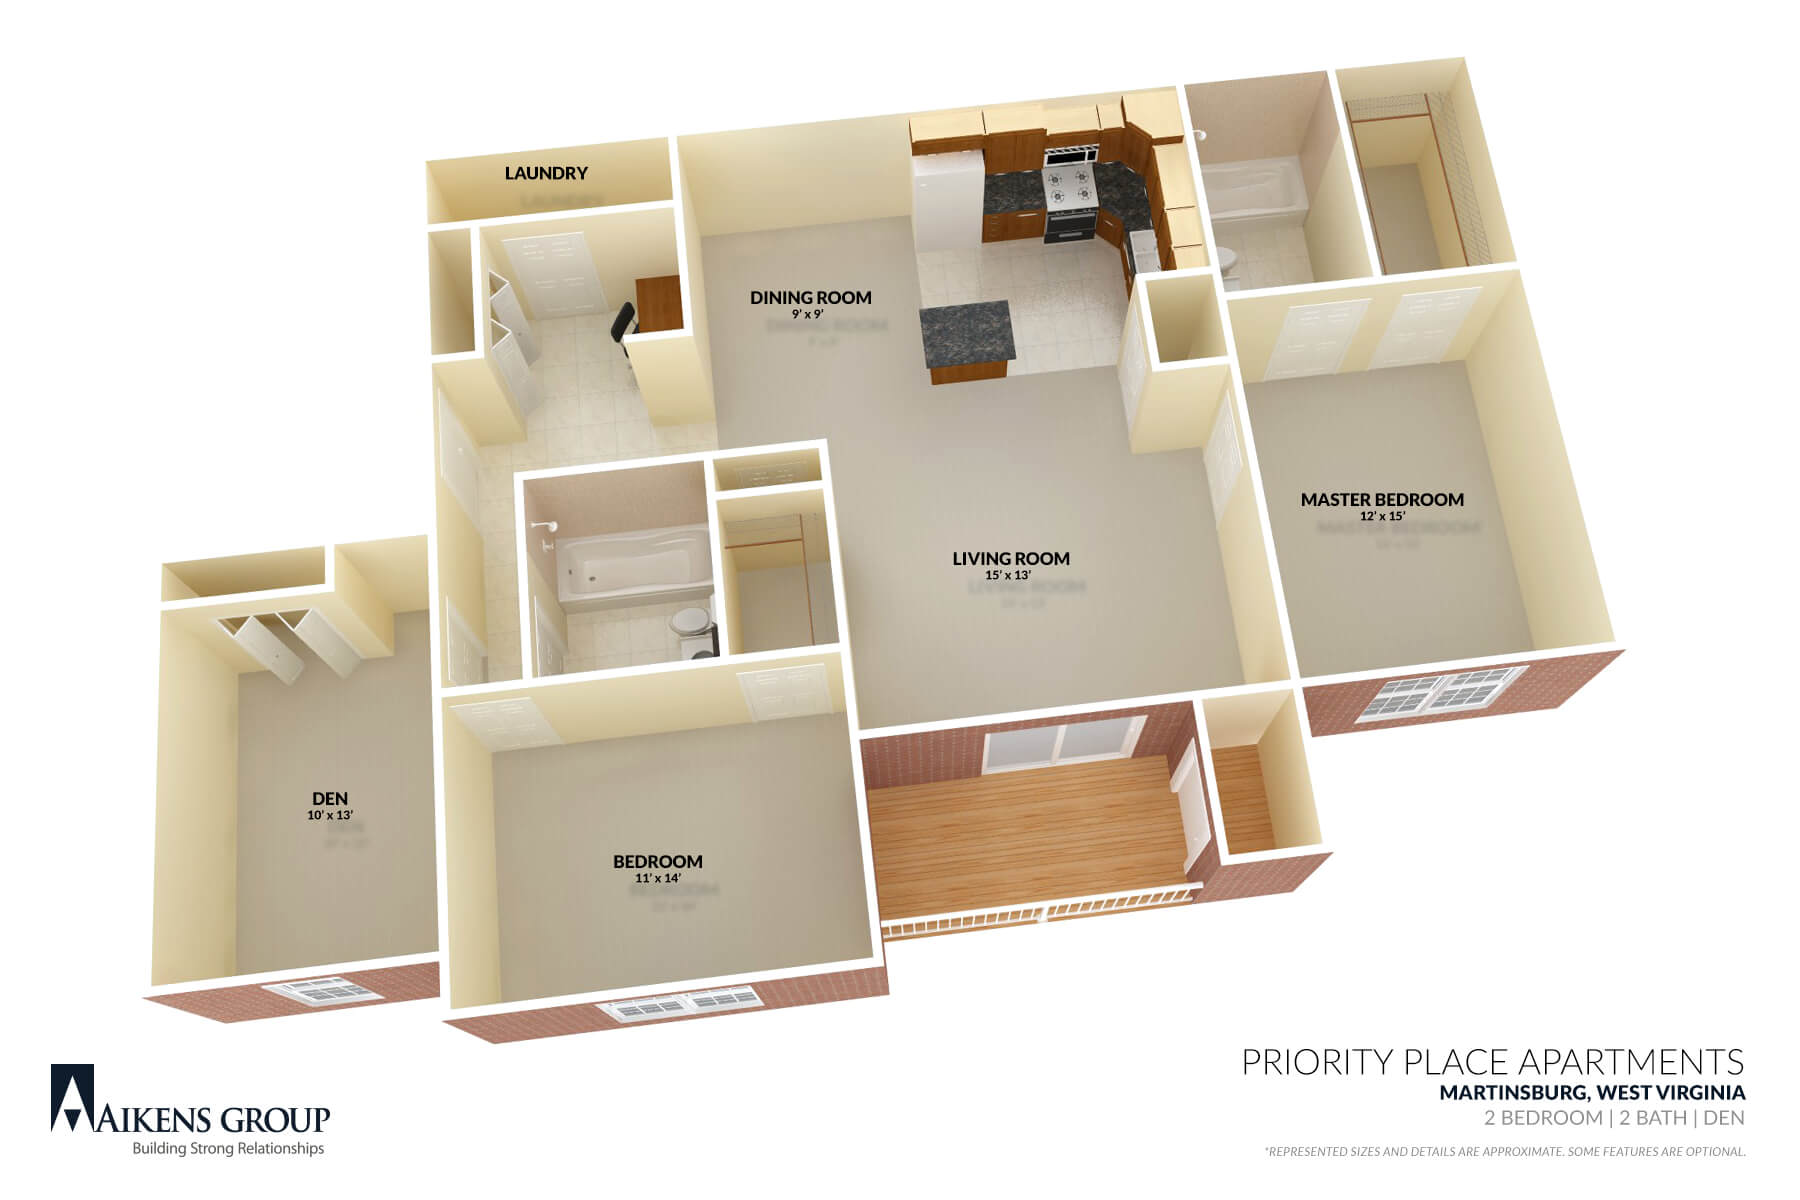 Priority Place Apartments Floor plan - Martinsburg, WV